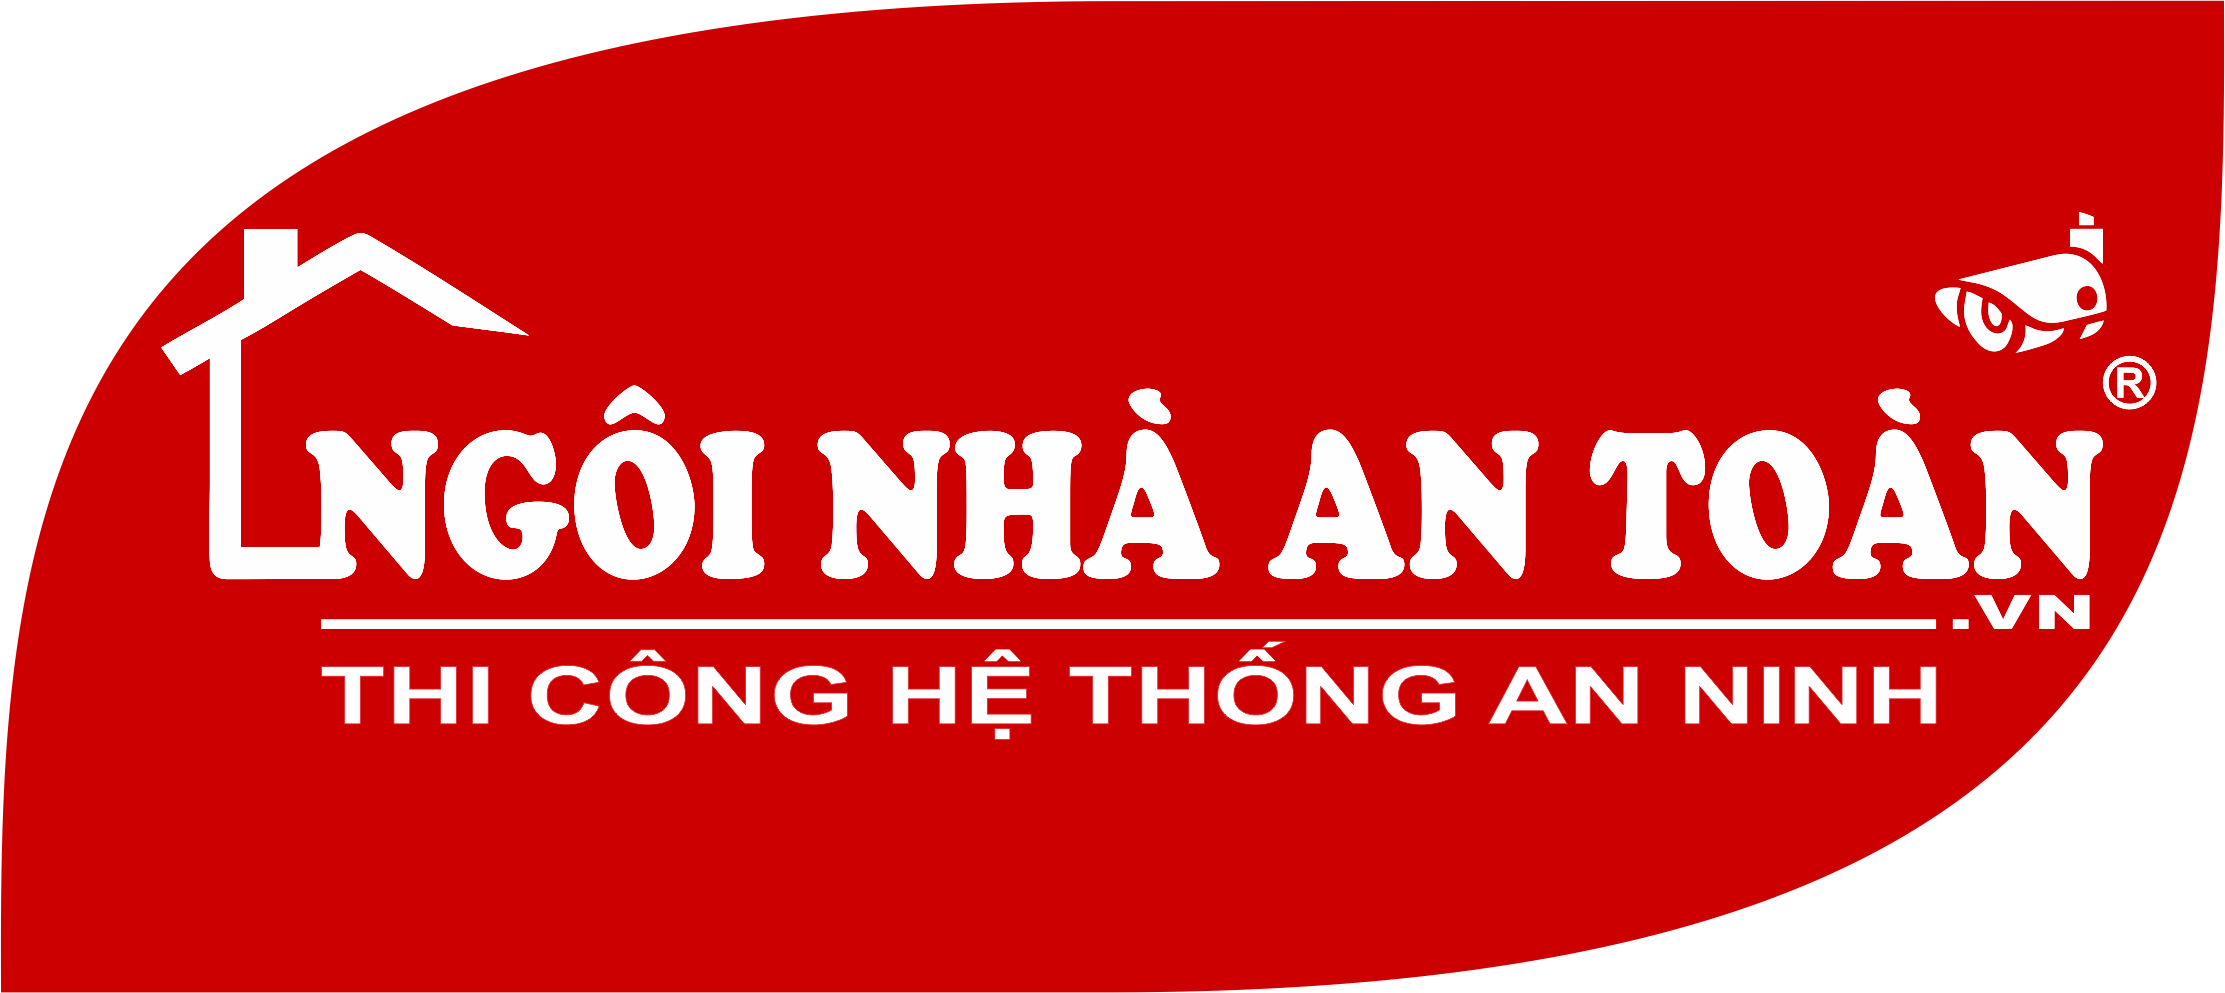 NGÔI NHÀ AN TOÀN ® Thi công hệ thống an ninh – camera